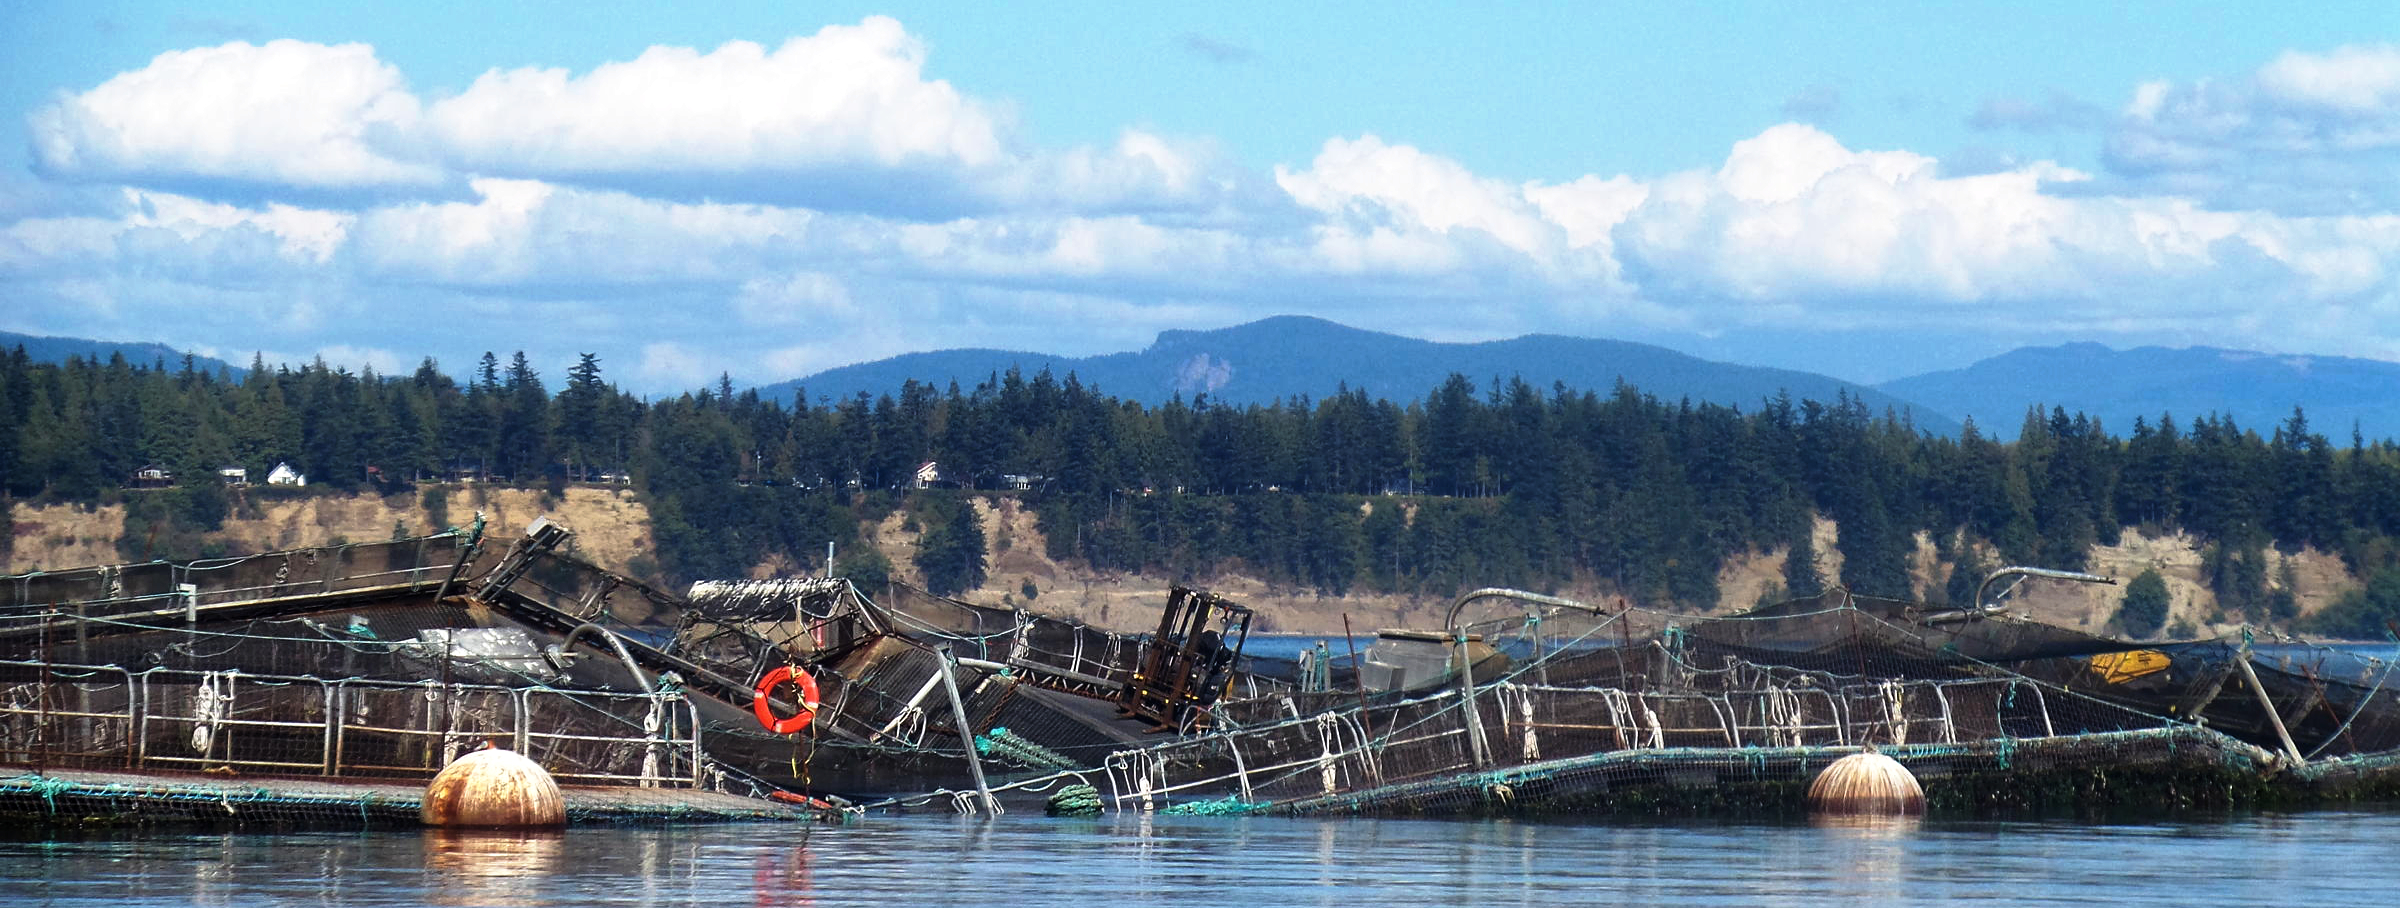 Collapsed salmon pens the day of the accident in 2018.